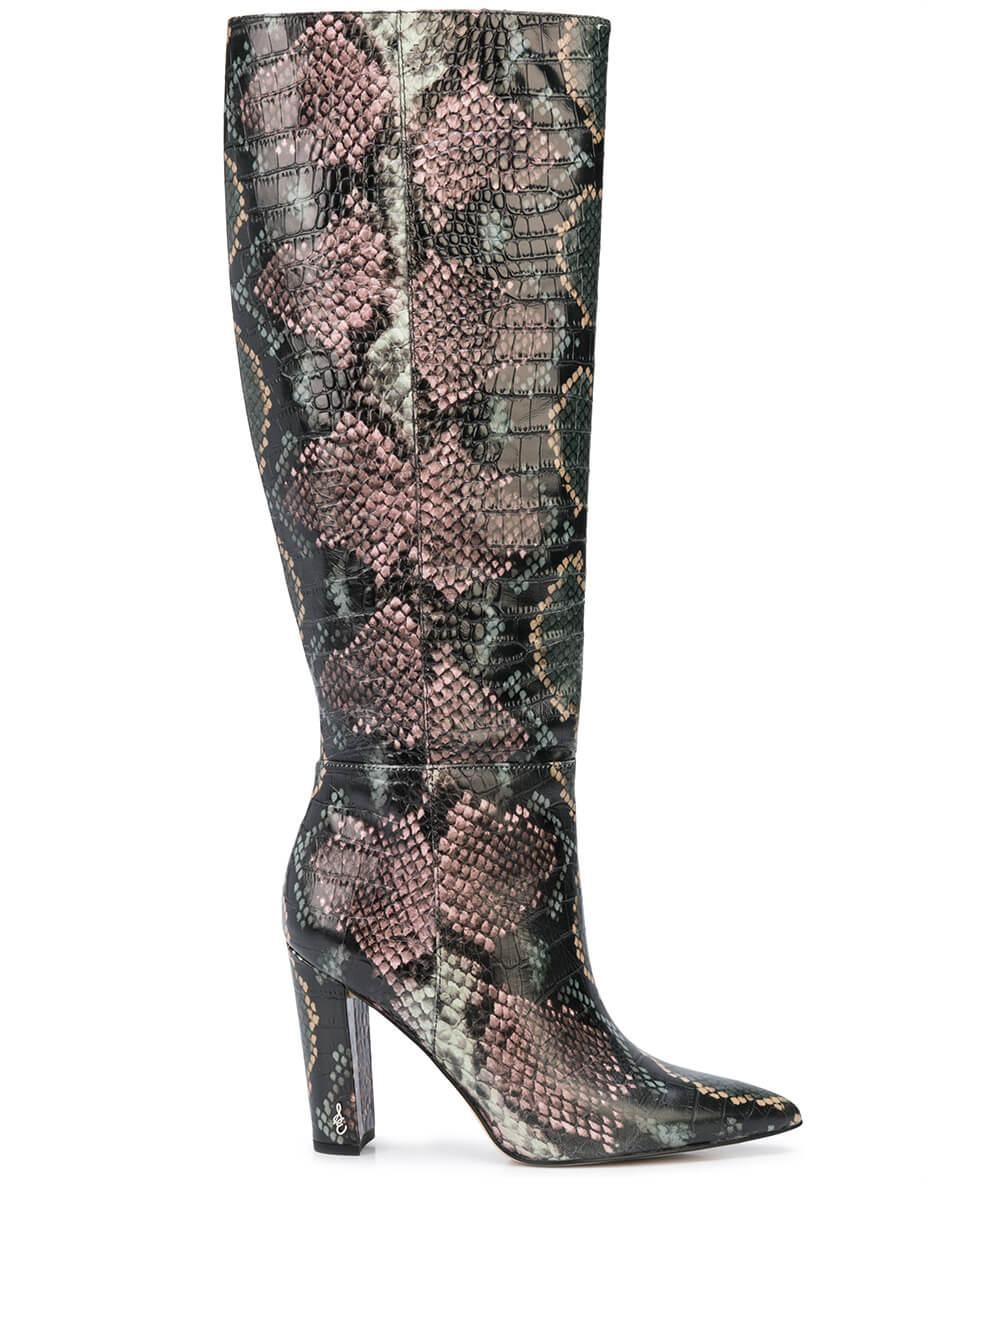 Tall Snake Print Boot Item # RAAKEL